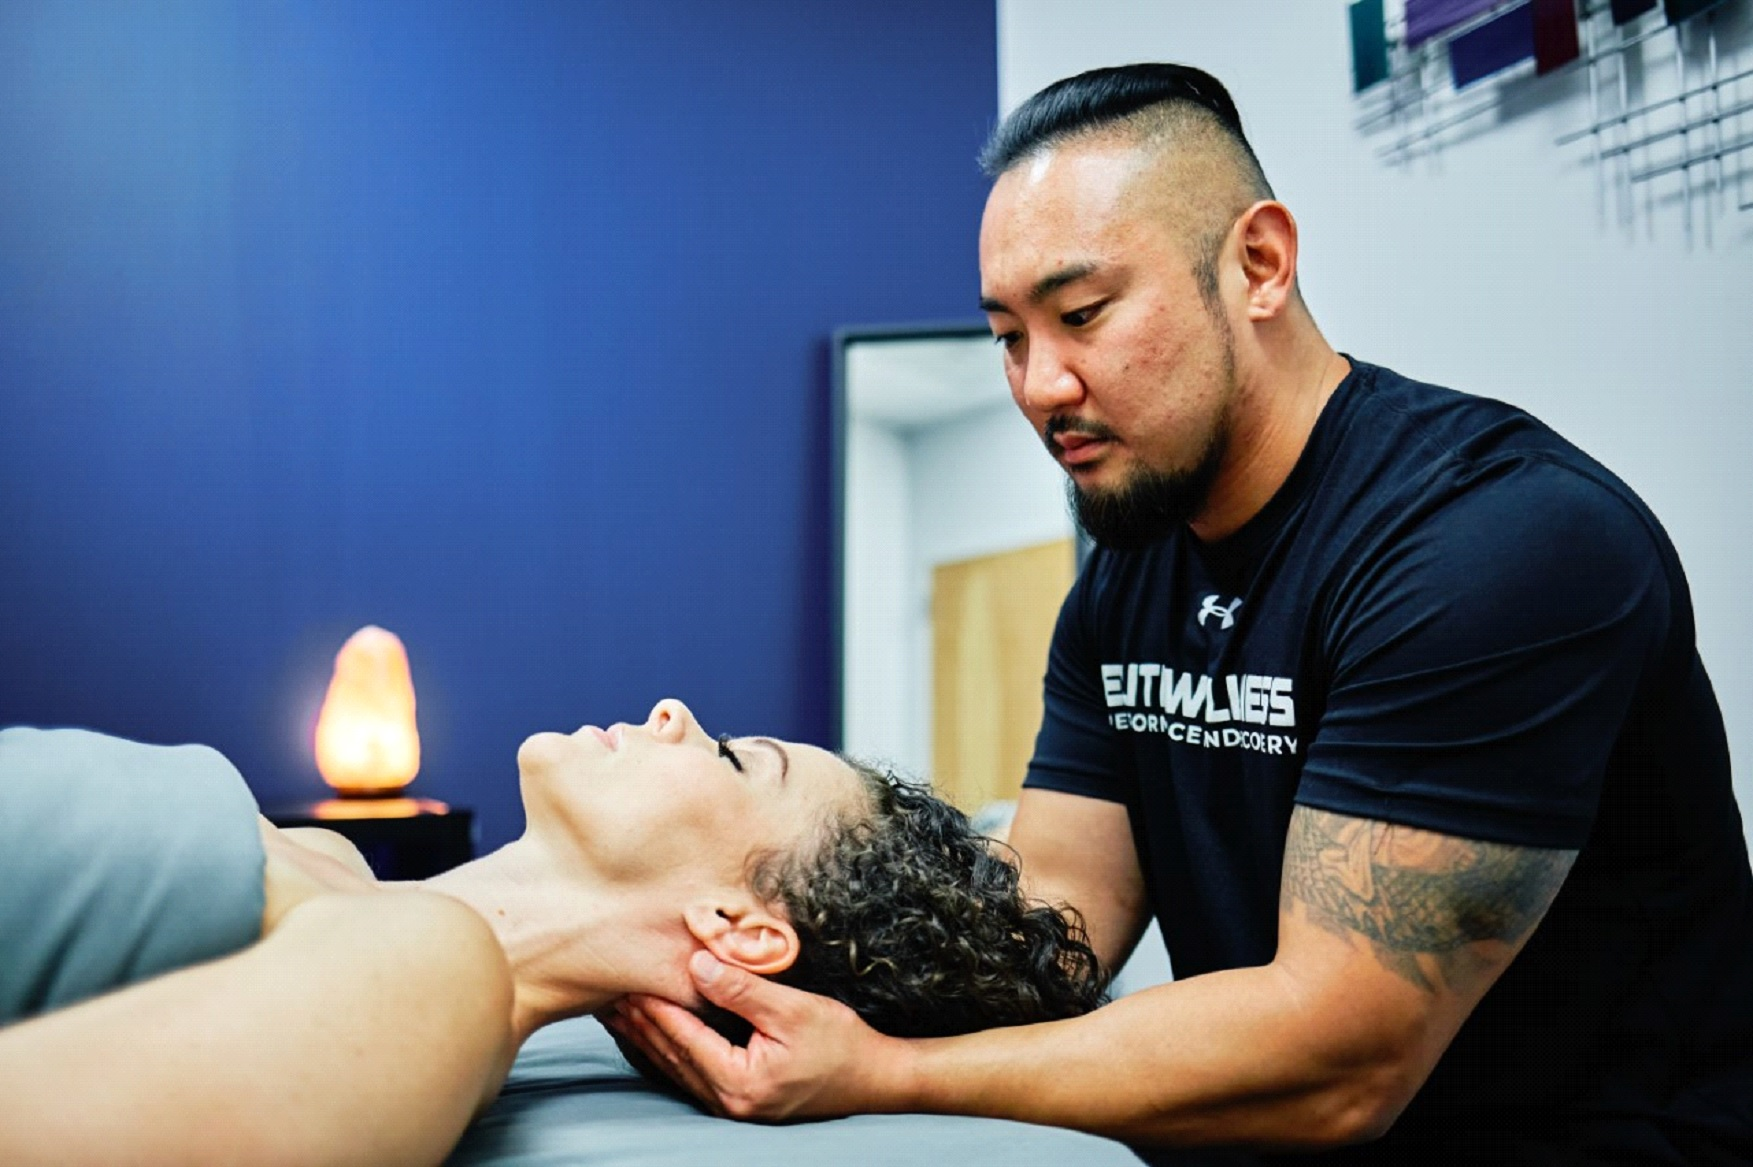 Massage Therapy at Elite Wellness